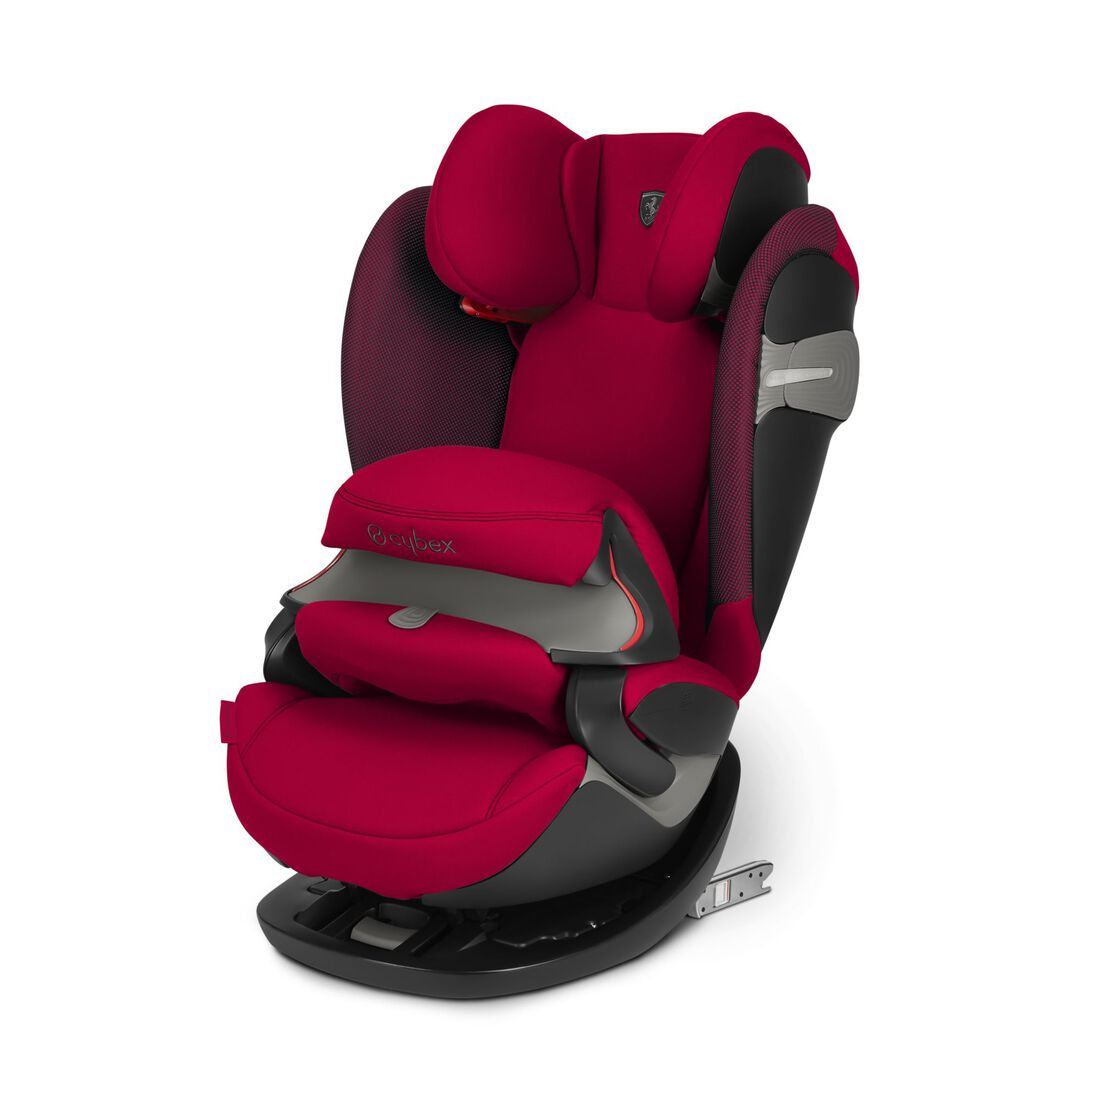 CYBEX Pallas S-fix - Ferrari Racing Red in Ferrari Racing Red large image number 1